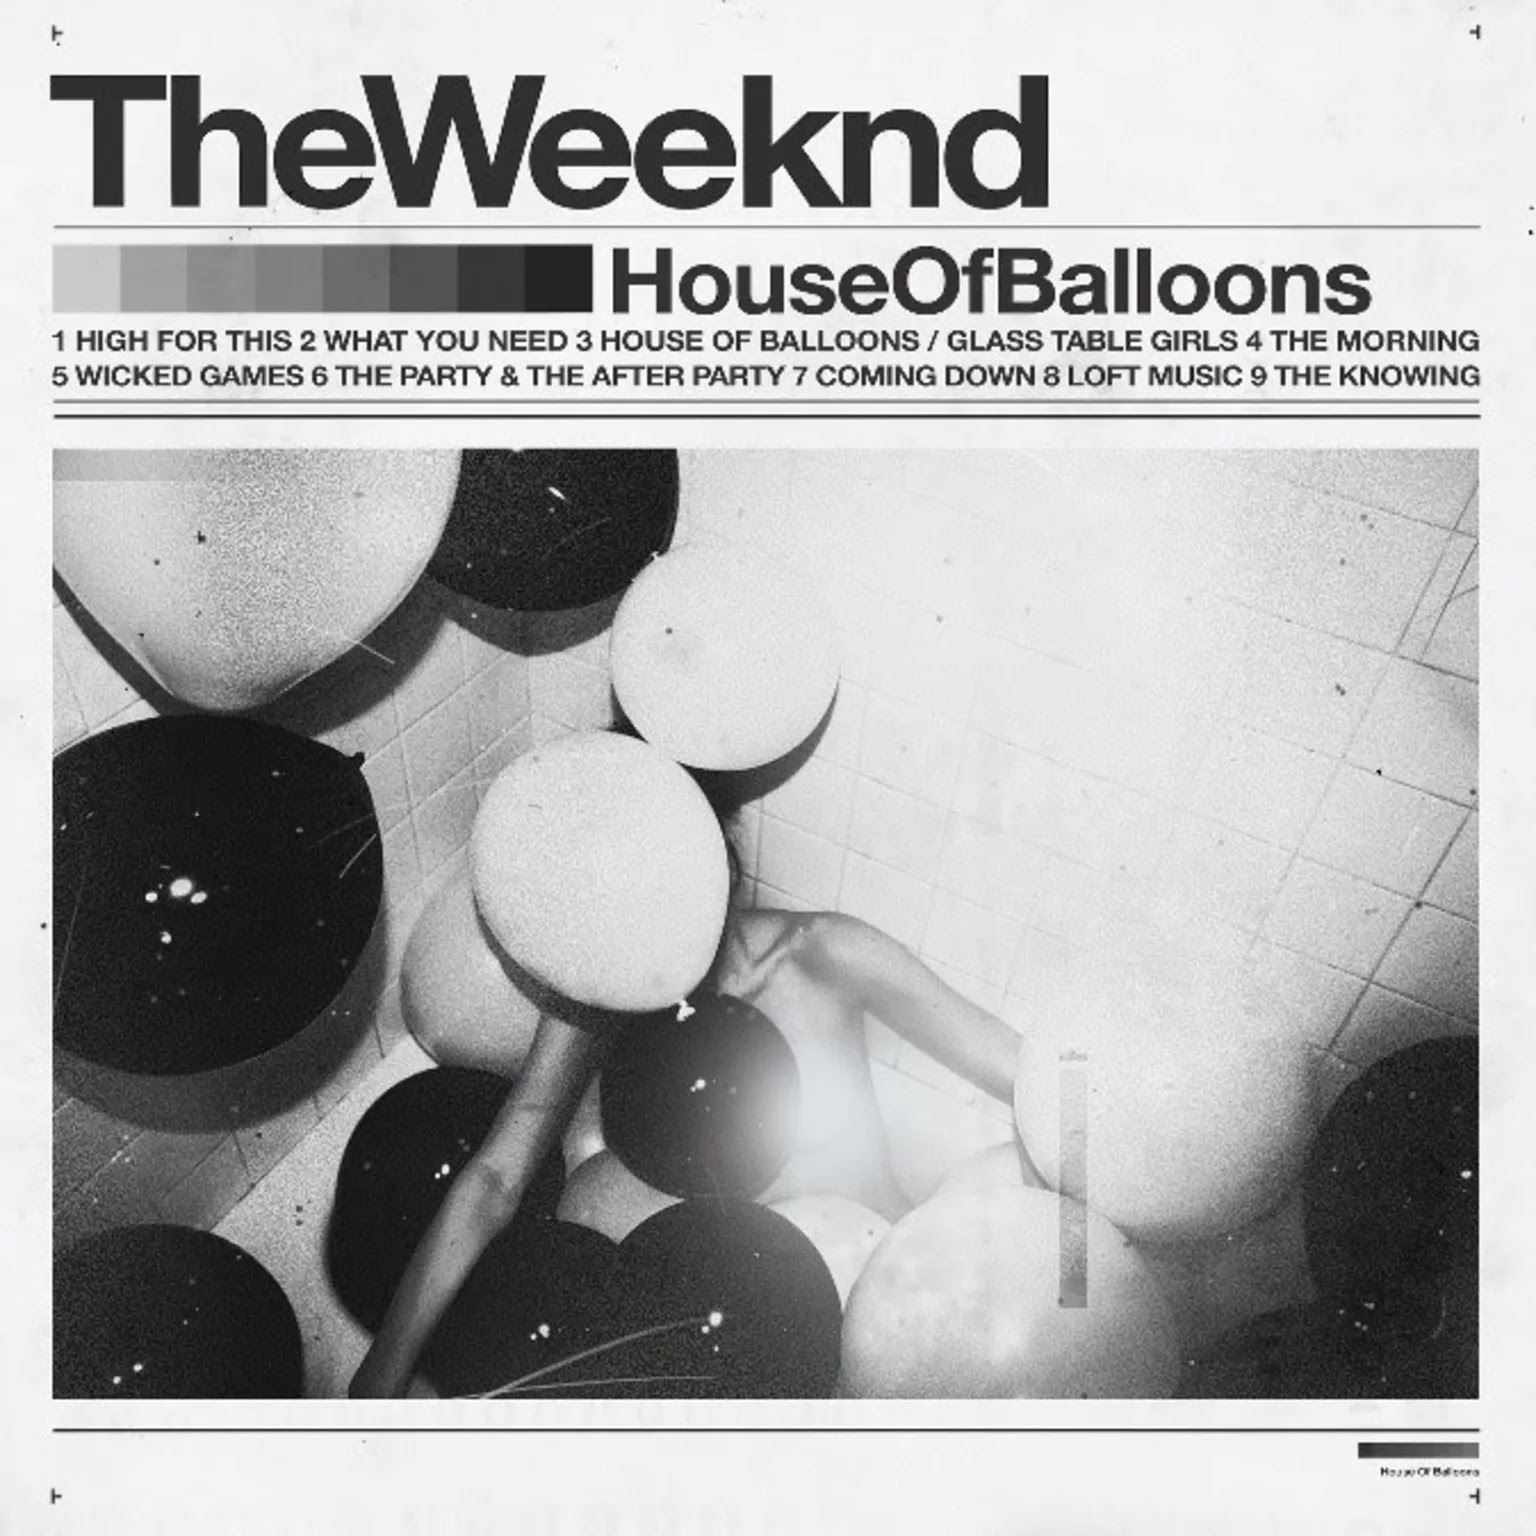 The Weeknd reissues house of balloons